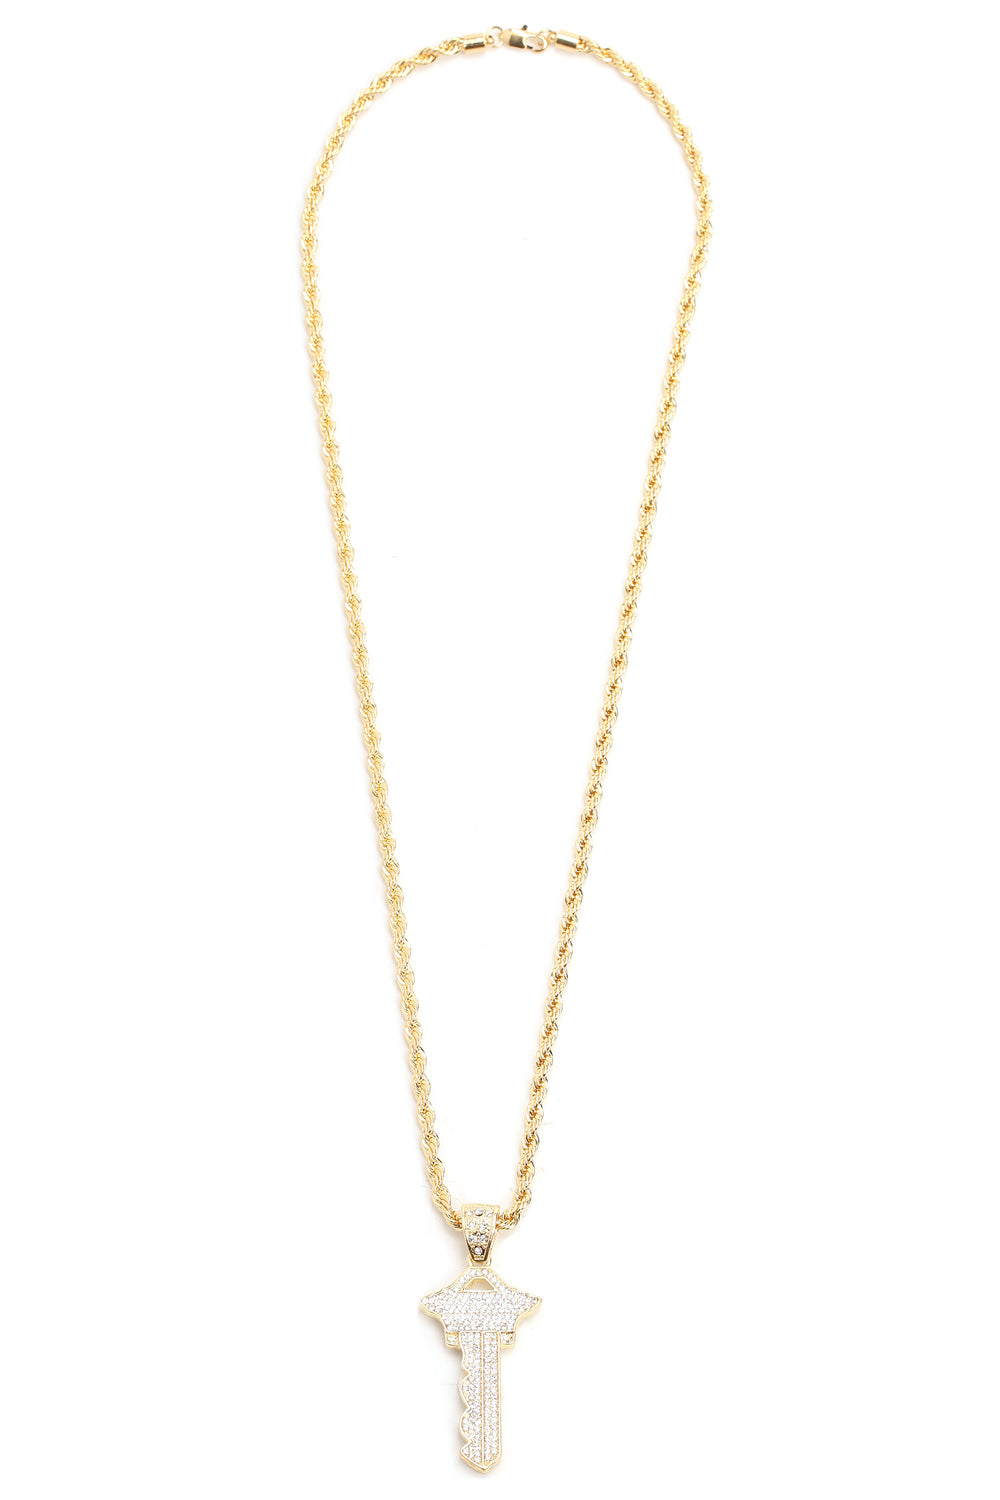 I Got The Keys Chain Necklace - Gold